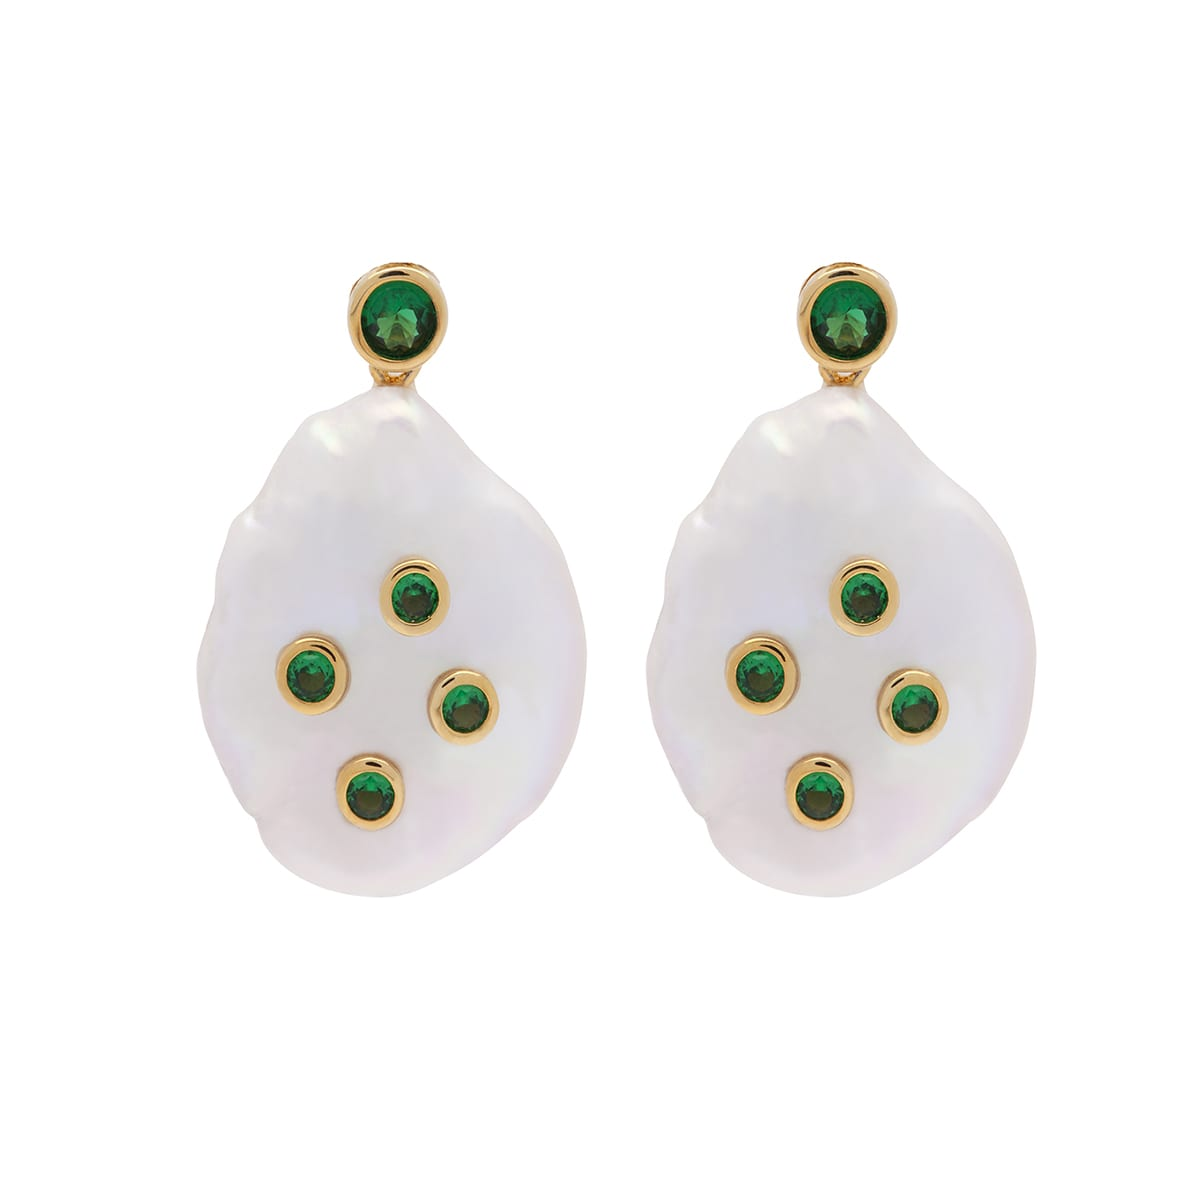 Amber Sceats Victoria Earrings Green